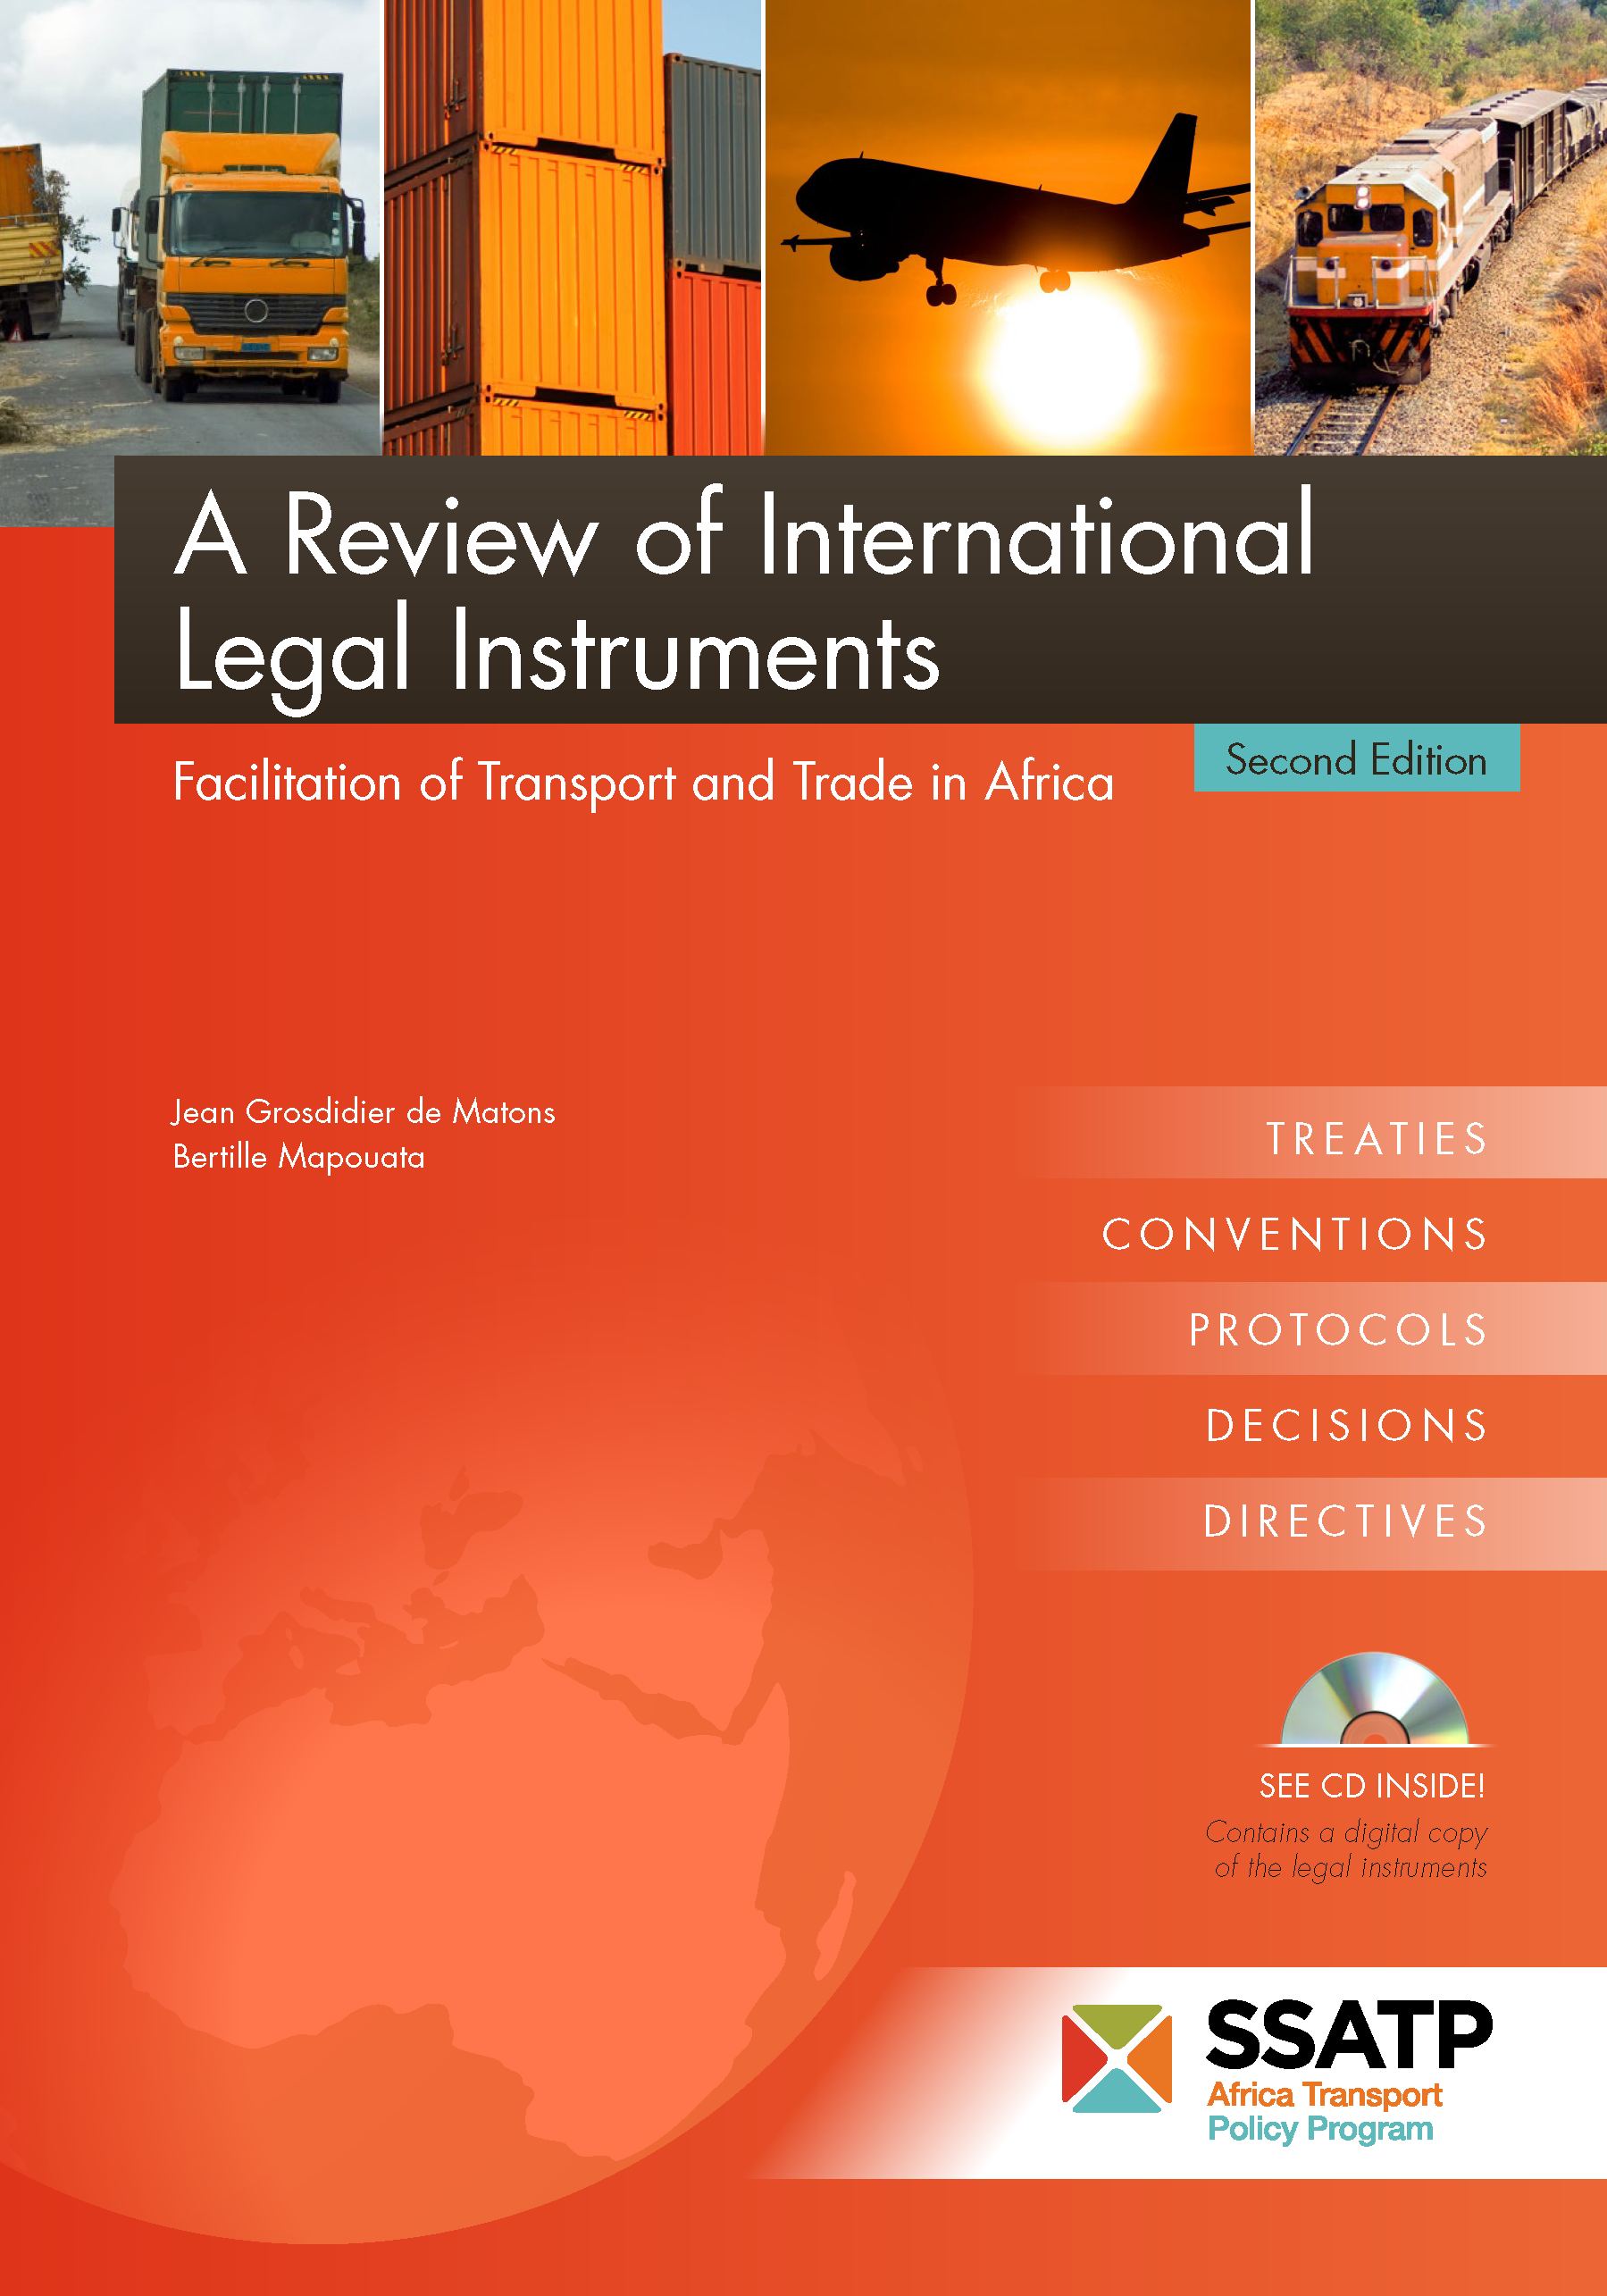 A Review of International Legal Instruments: Facilitation of Transport and Trade in Africa